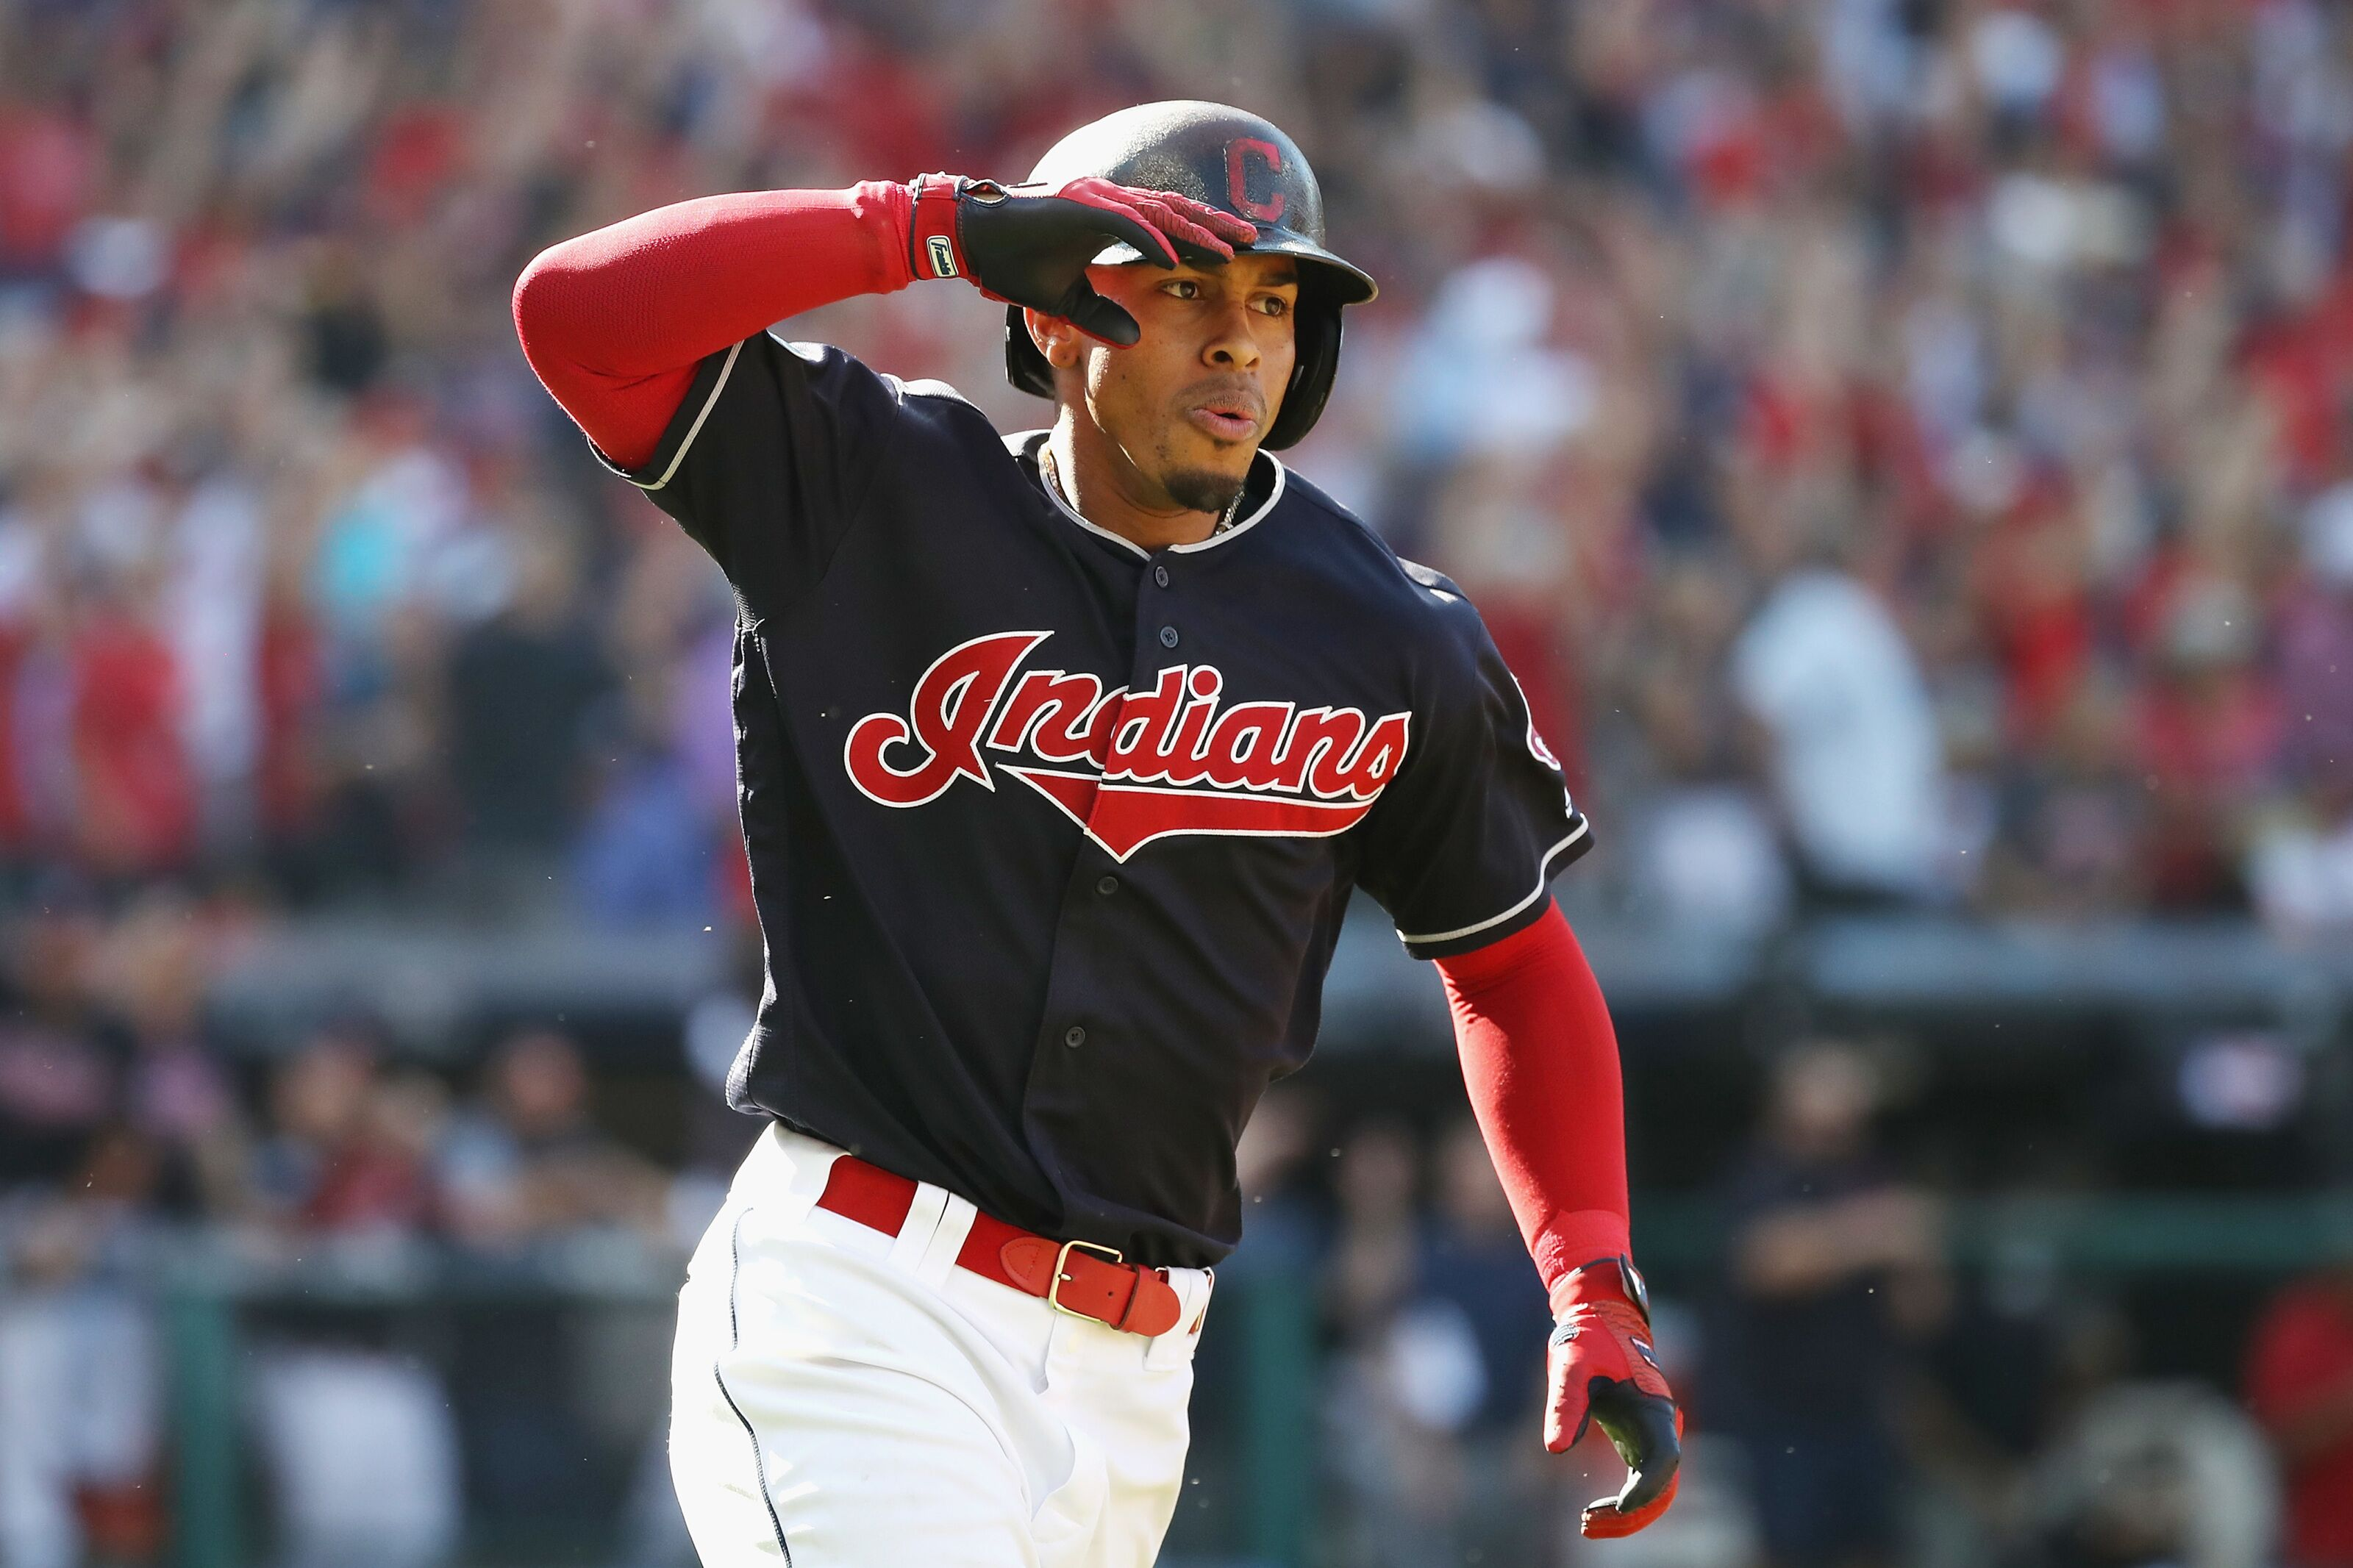 Cleveland Indians: Can The Tribe Have Sustained Success?